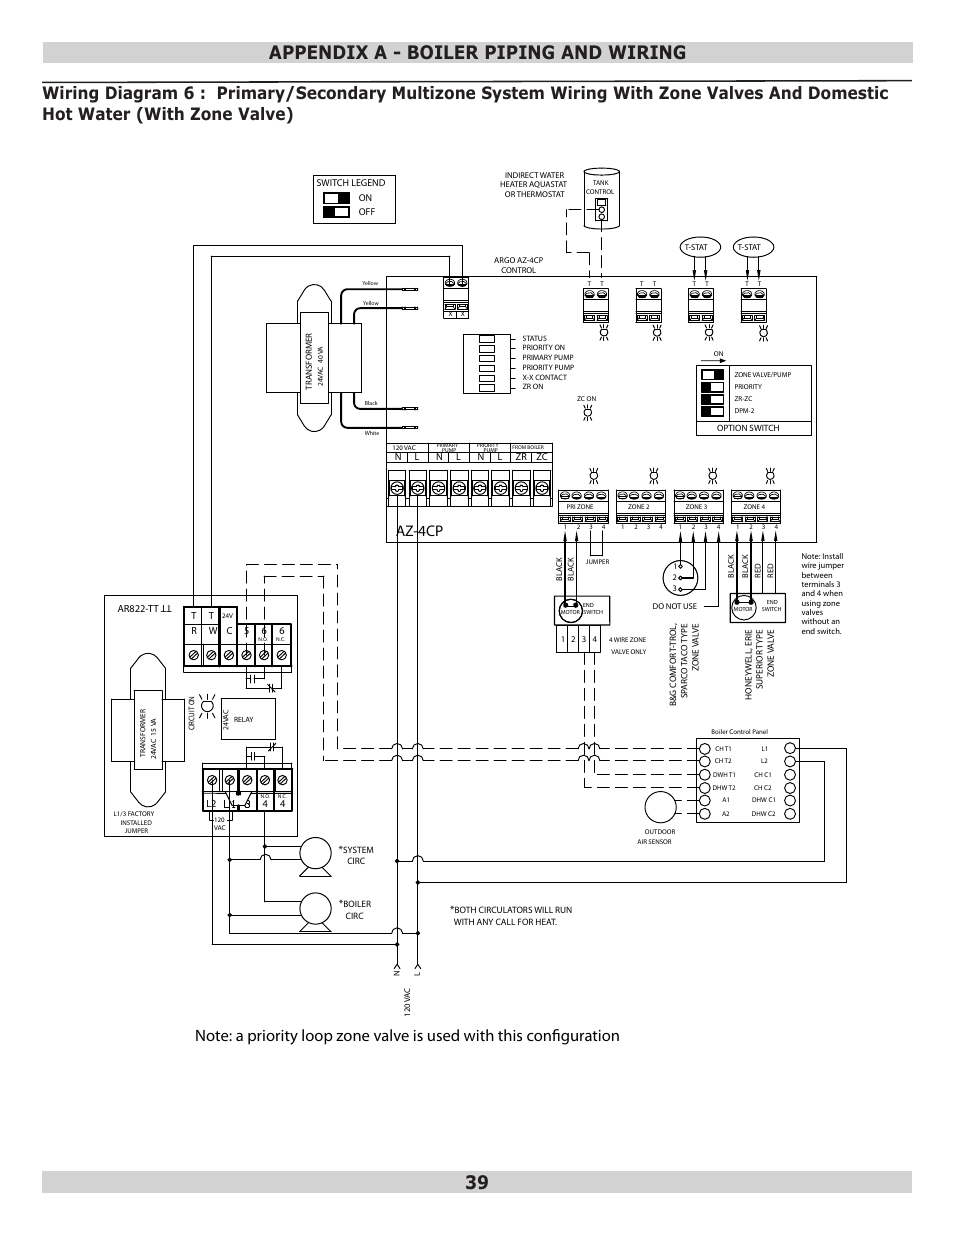 industrial gas boiler wiring diagram appendix a - boiler piping and wiring 39, az-4cp | dunkirk ...